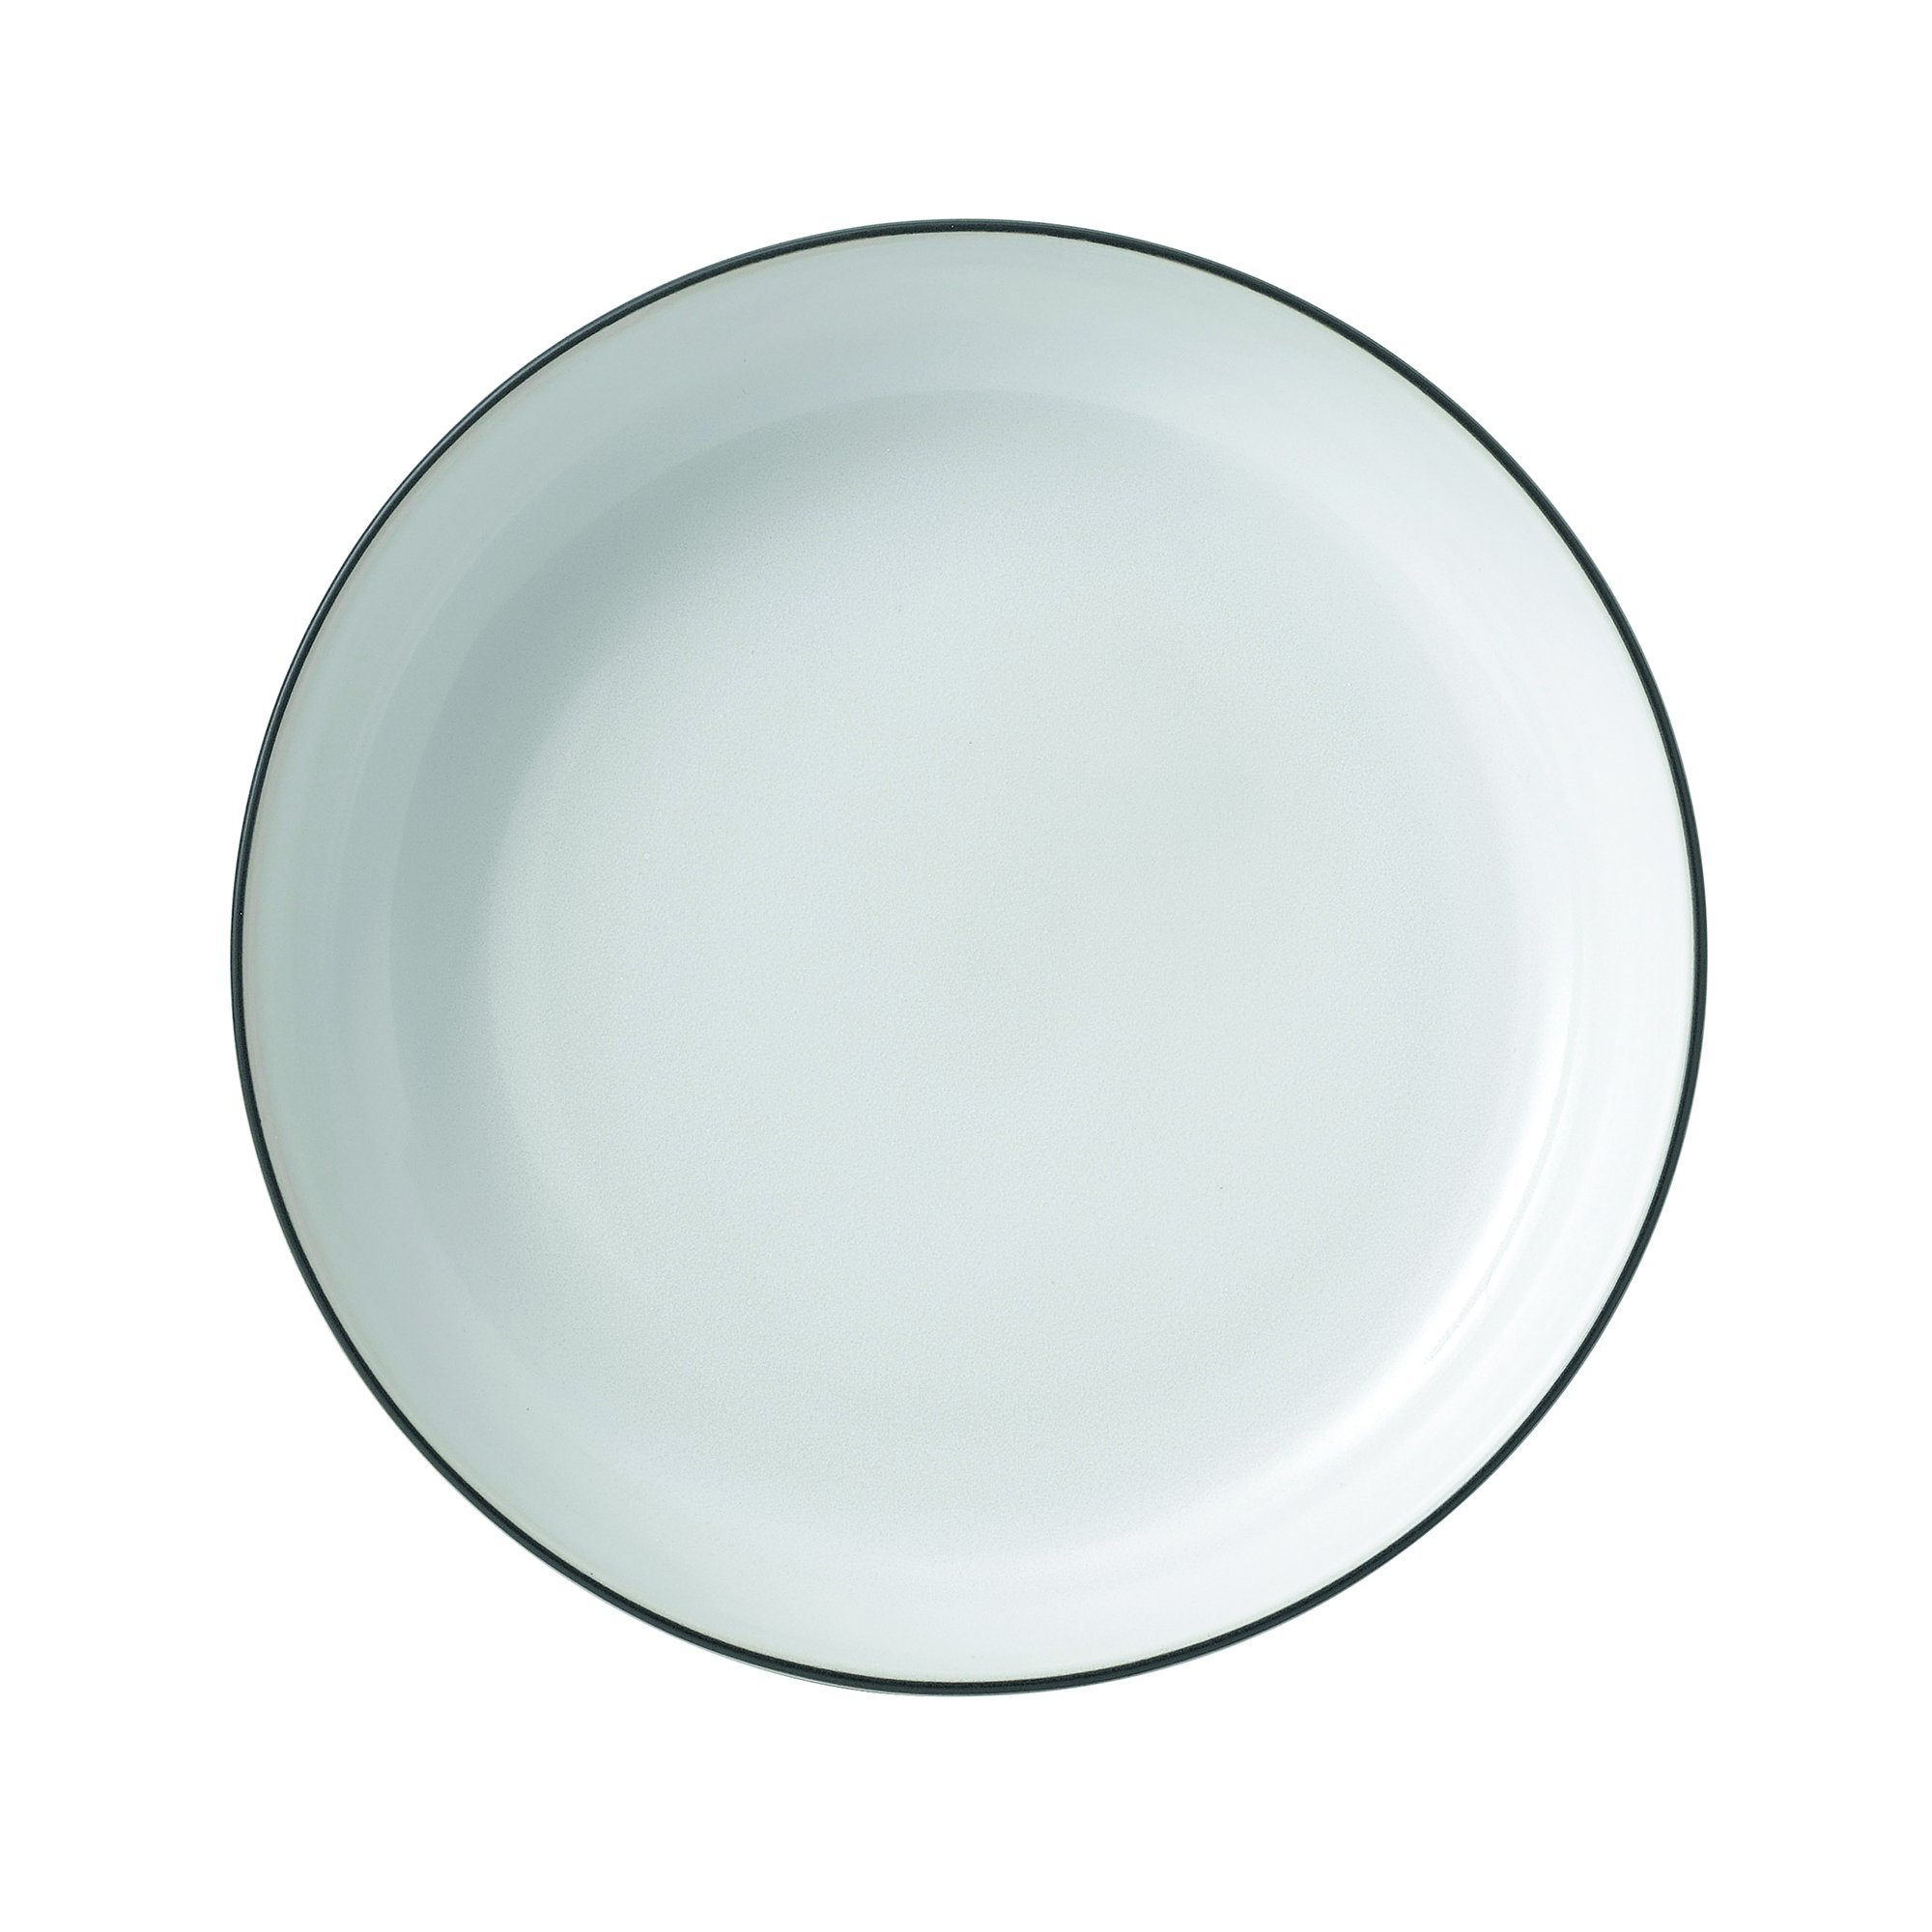 Royal Doulton Bread Street Pasta Bowl, 9'', White